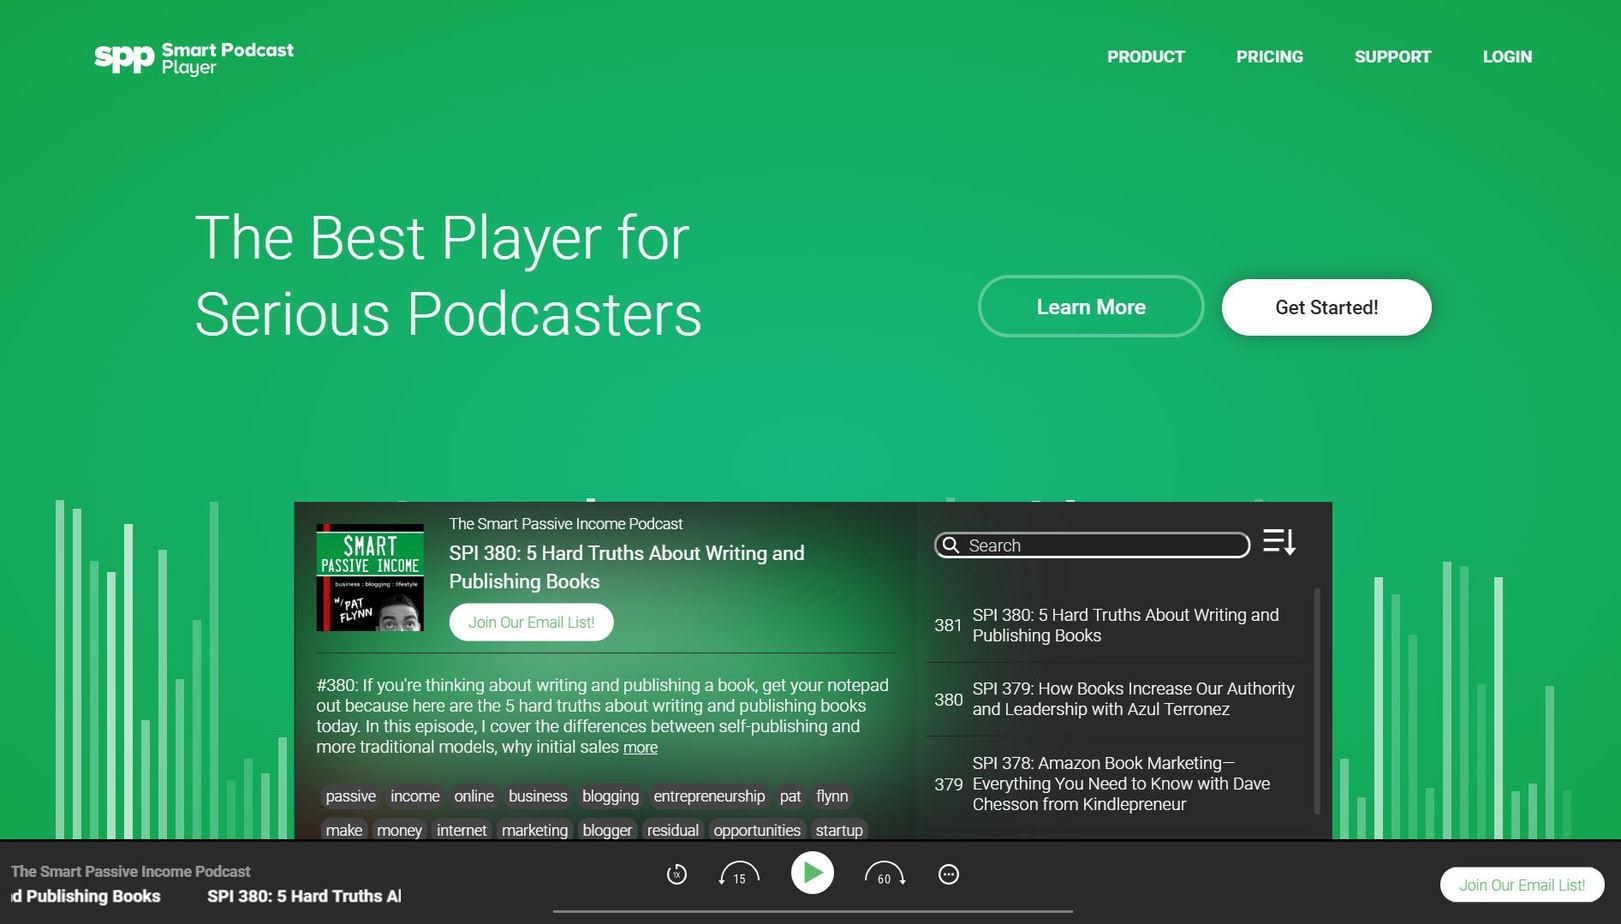 Smart Podcast Player homepage.